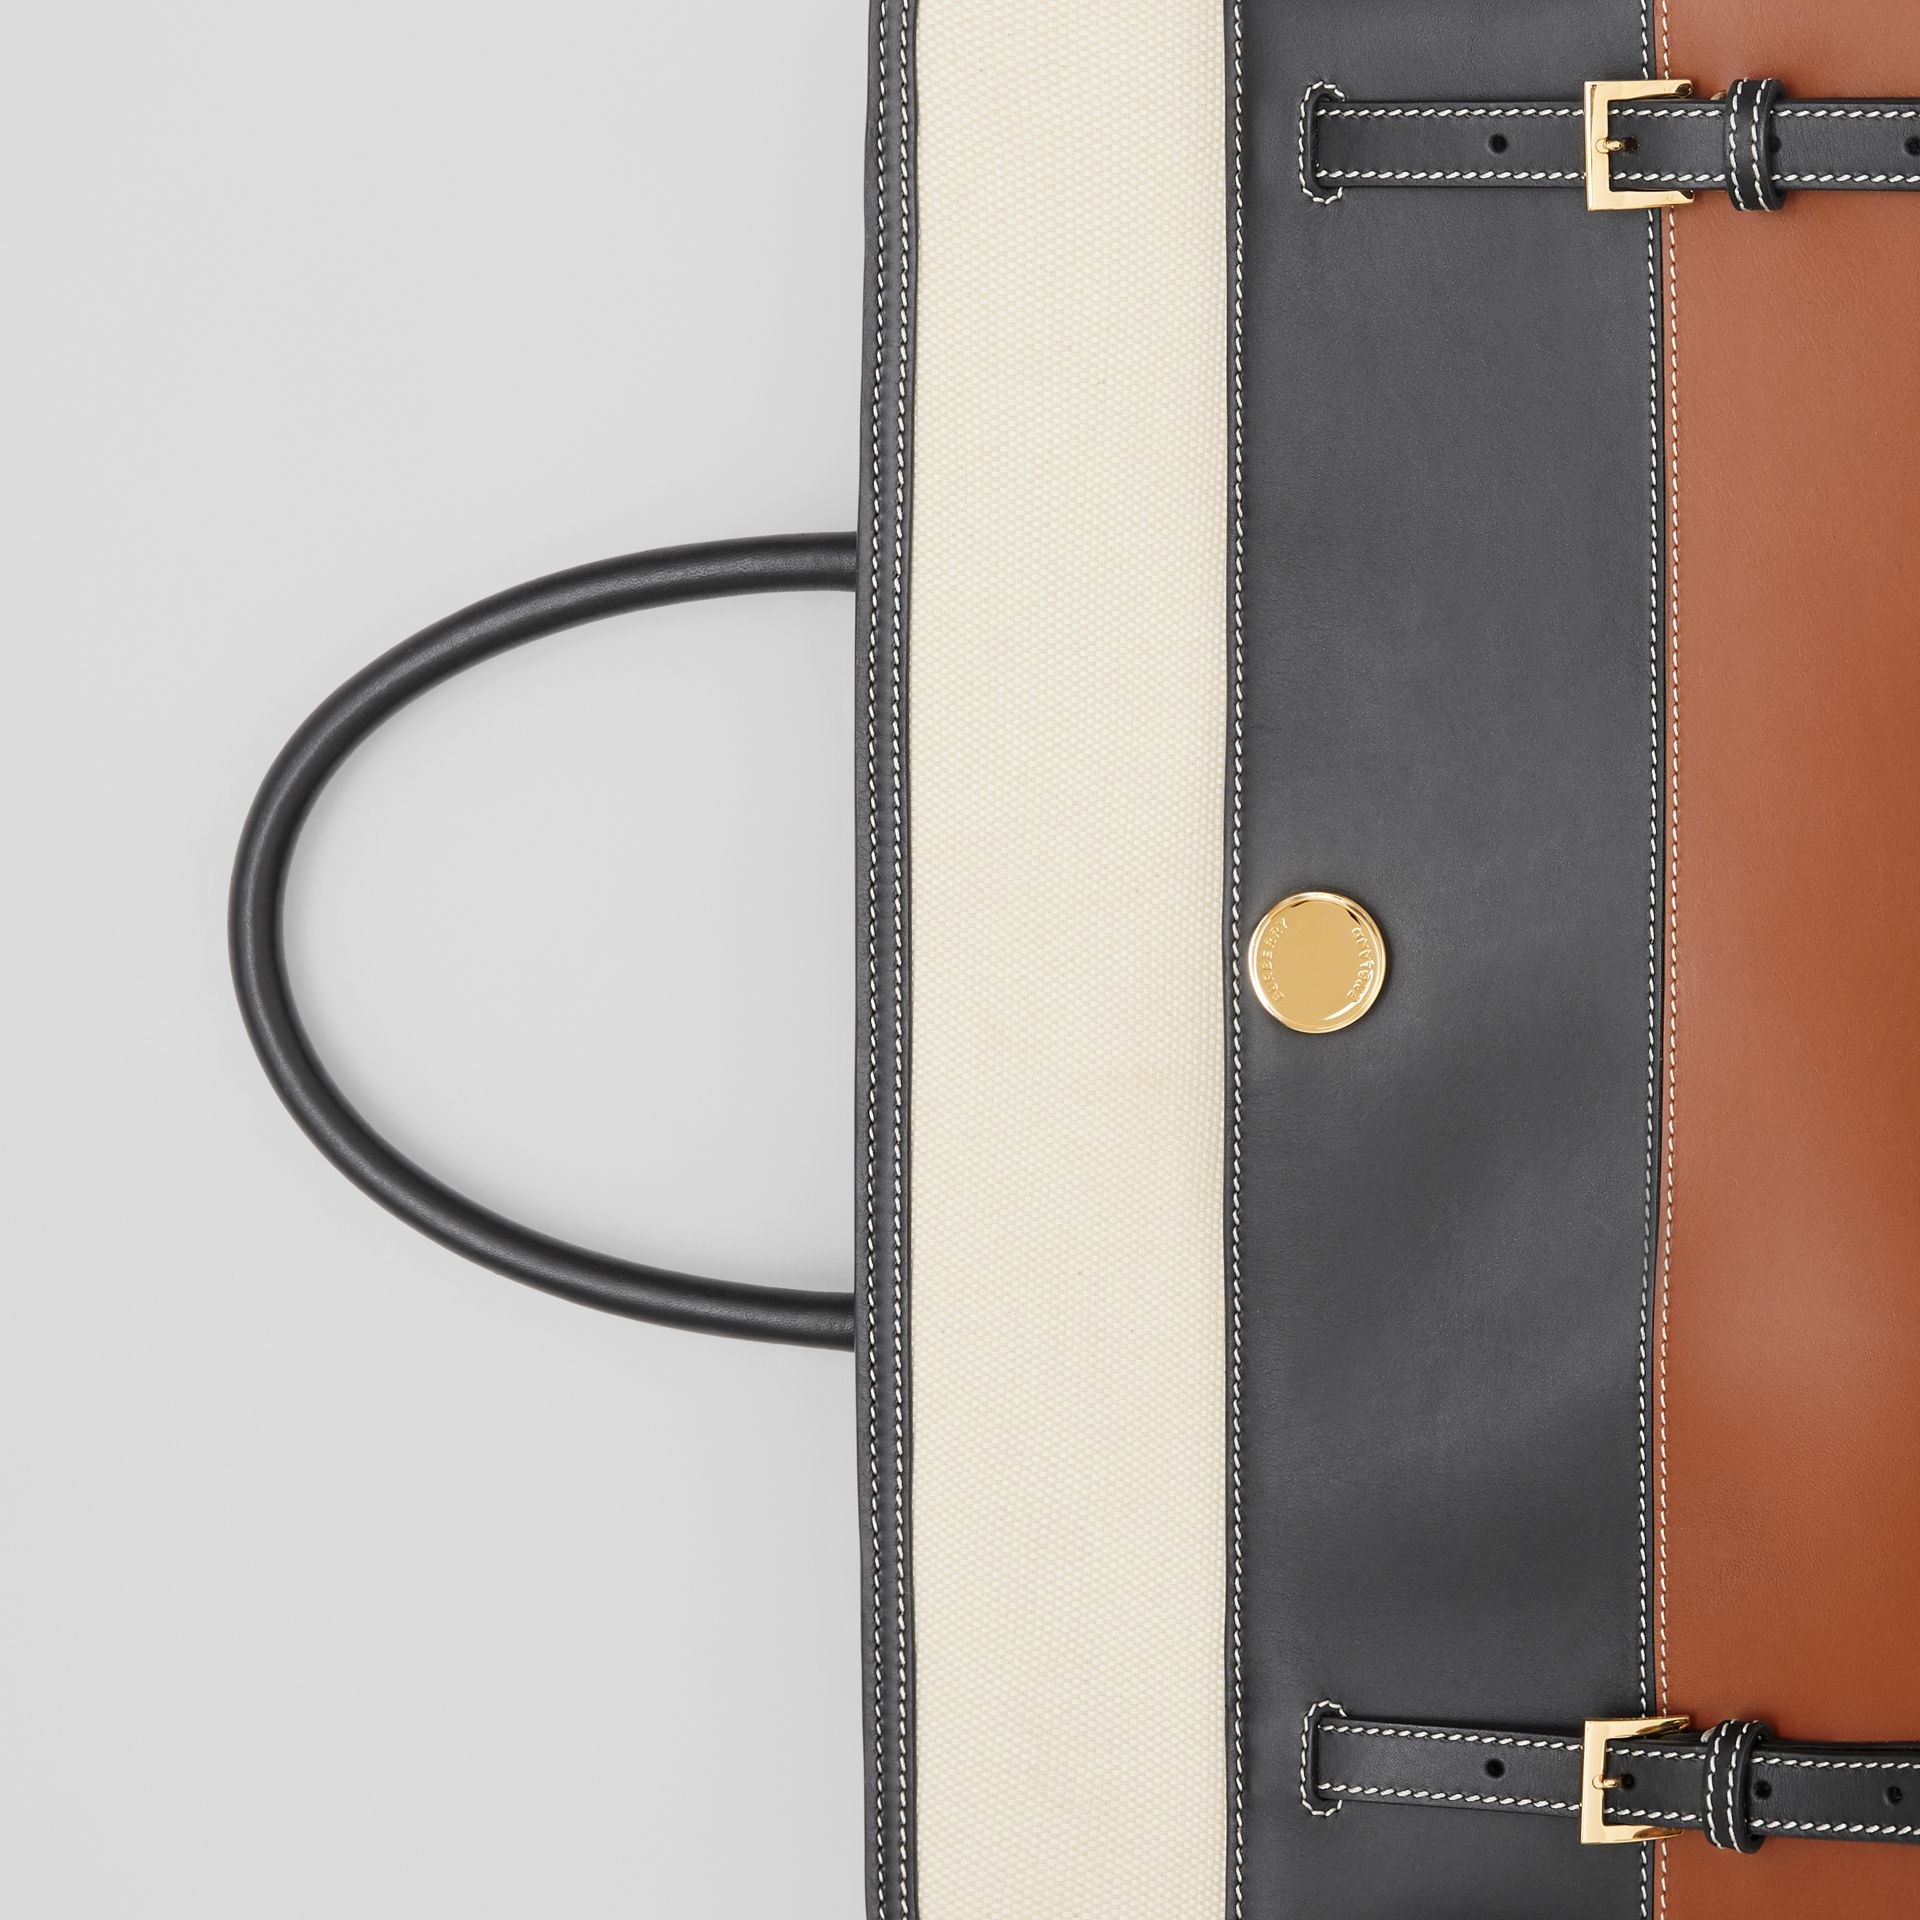 Tri-tone Leather and Canvas Society Top Handle Bag in Tan/black - Women | Burberry United States - gallery image 6